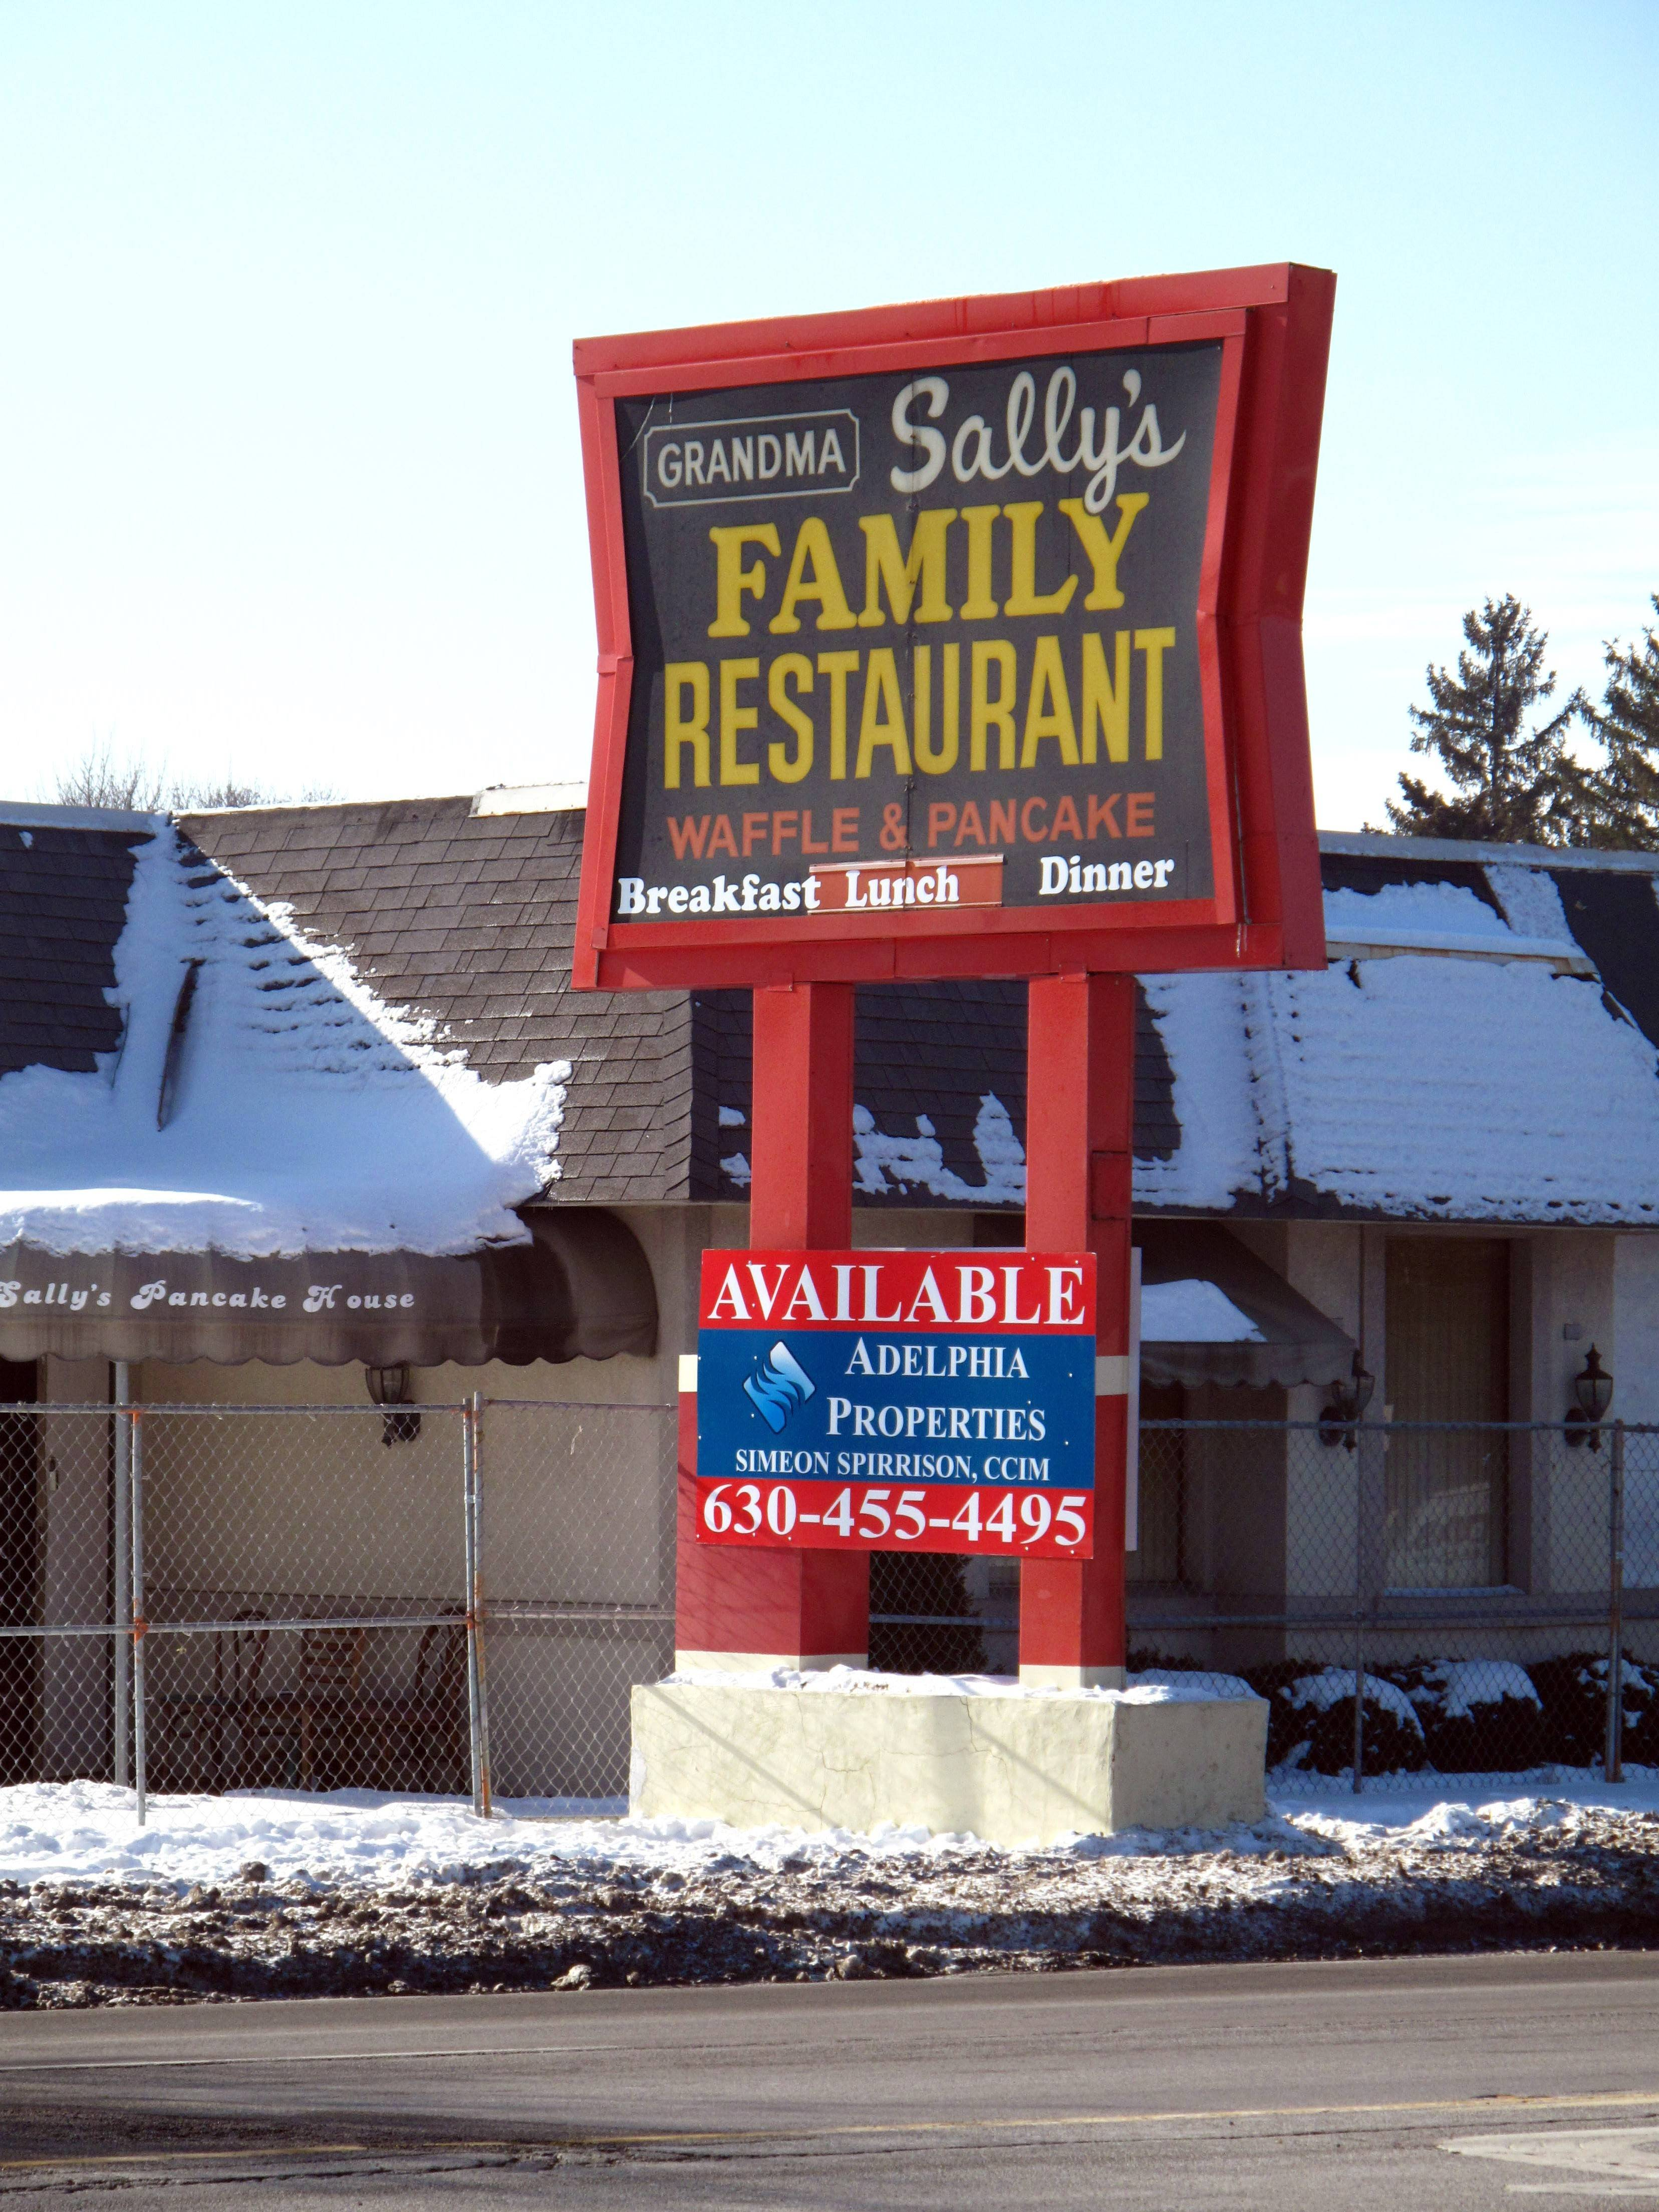 Grandma Sally's in Naperville up for sale 6 months after fire